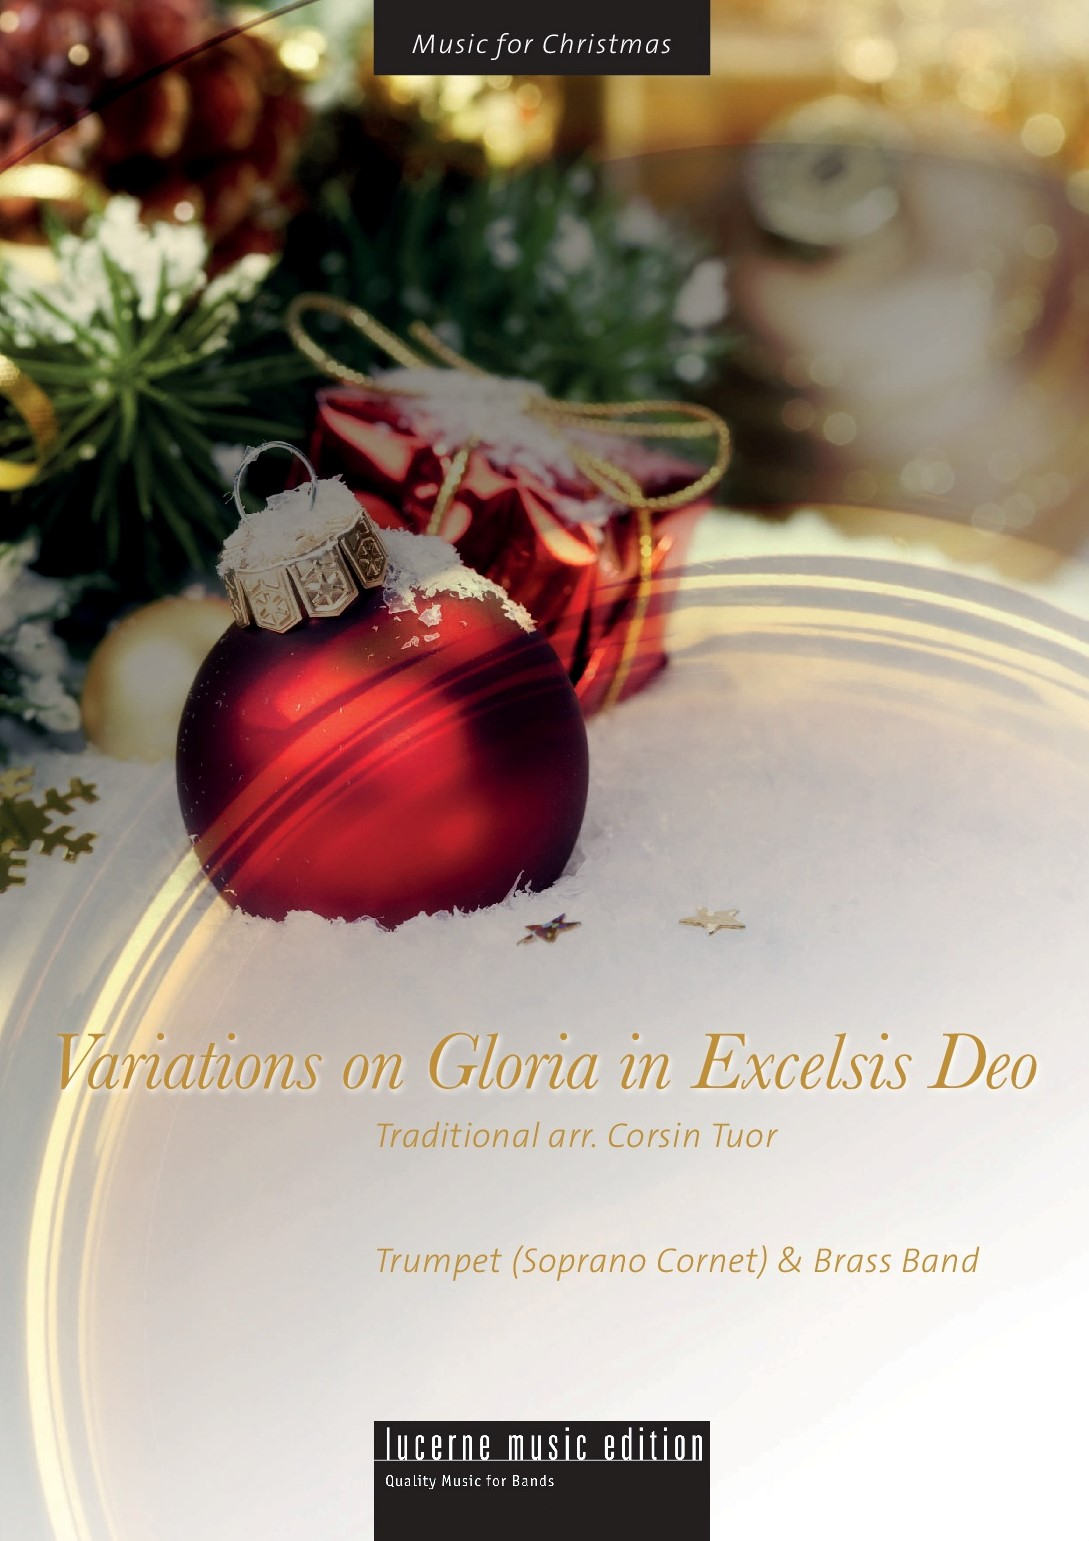 Variations on Gloria in Excelsis Deo